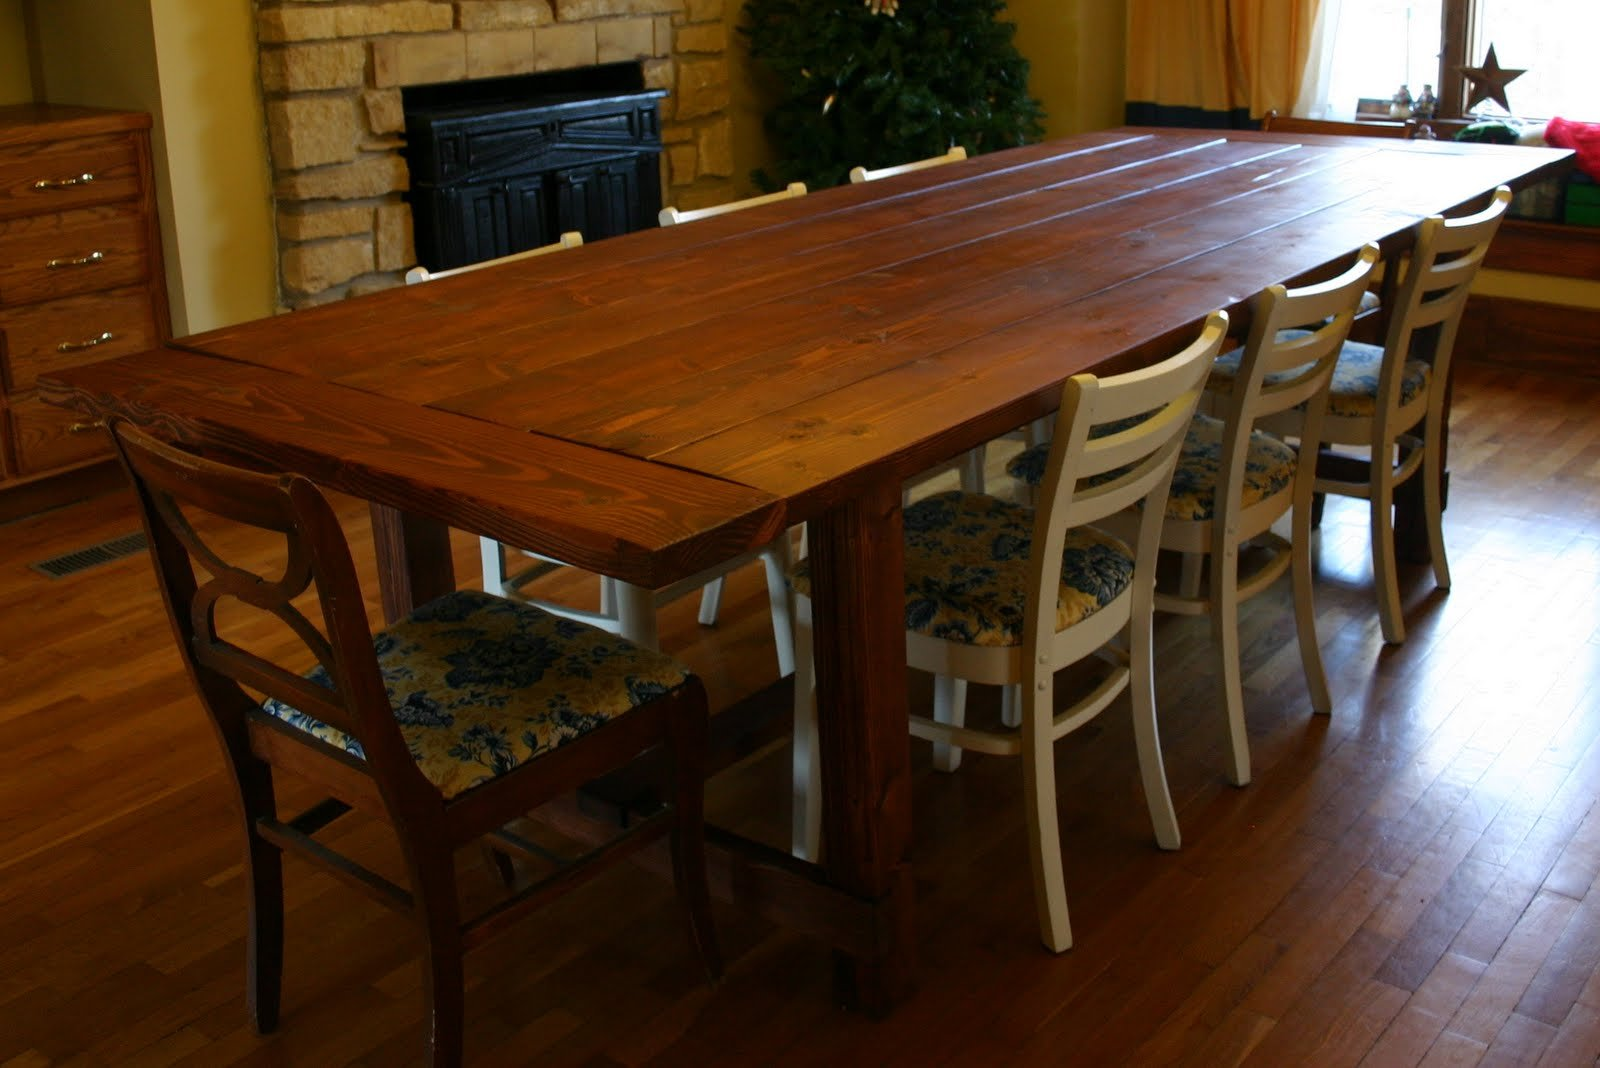 German jello salad rustic dining table i built from free for Breakfast table plans